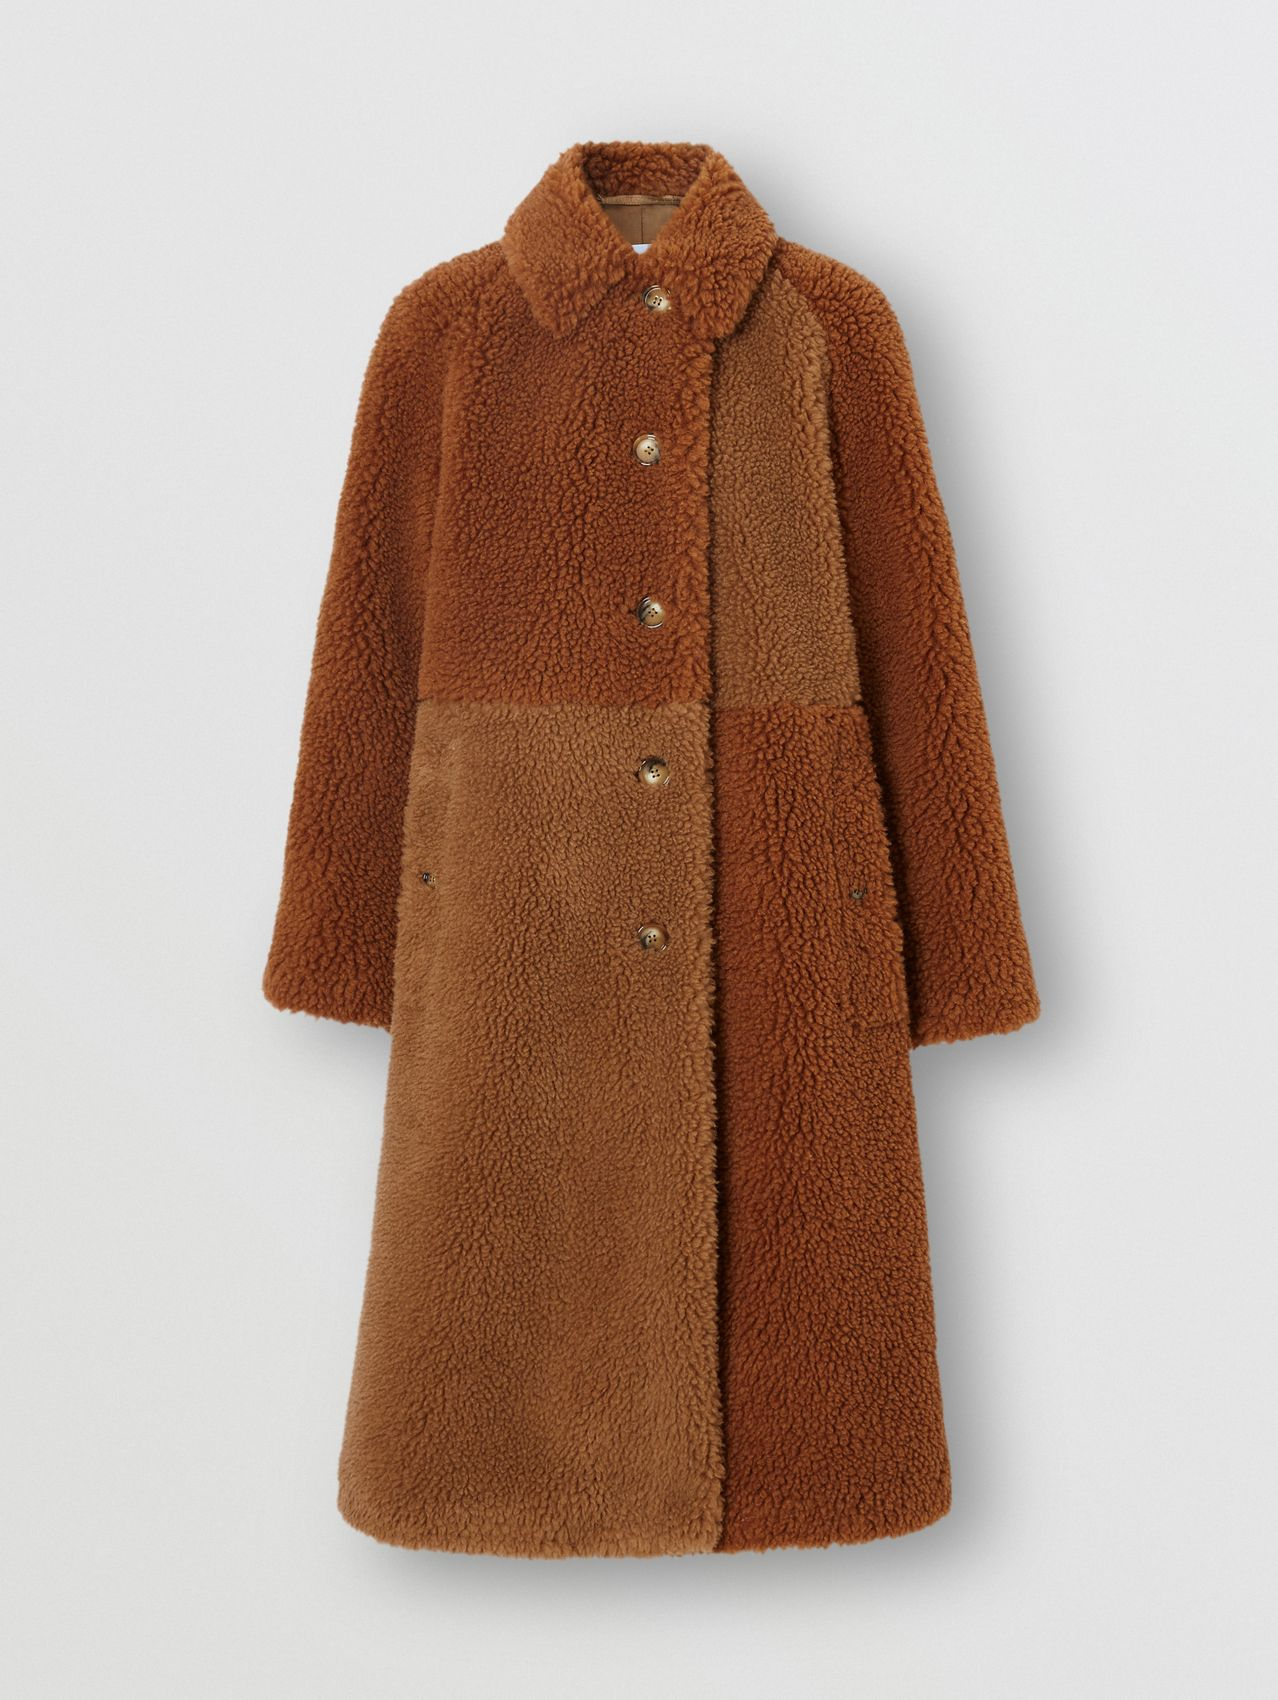 Faux Shearling and Camel Hair Blend Coat in Brown